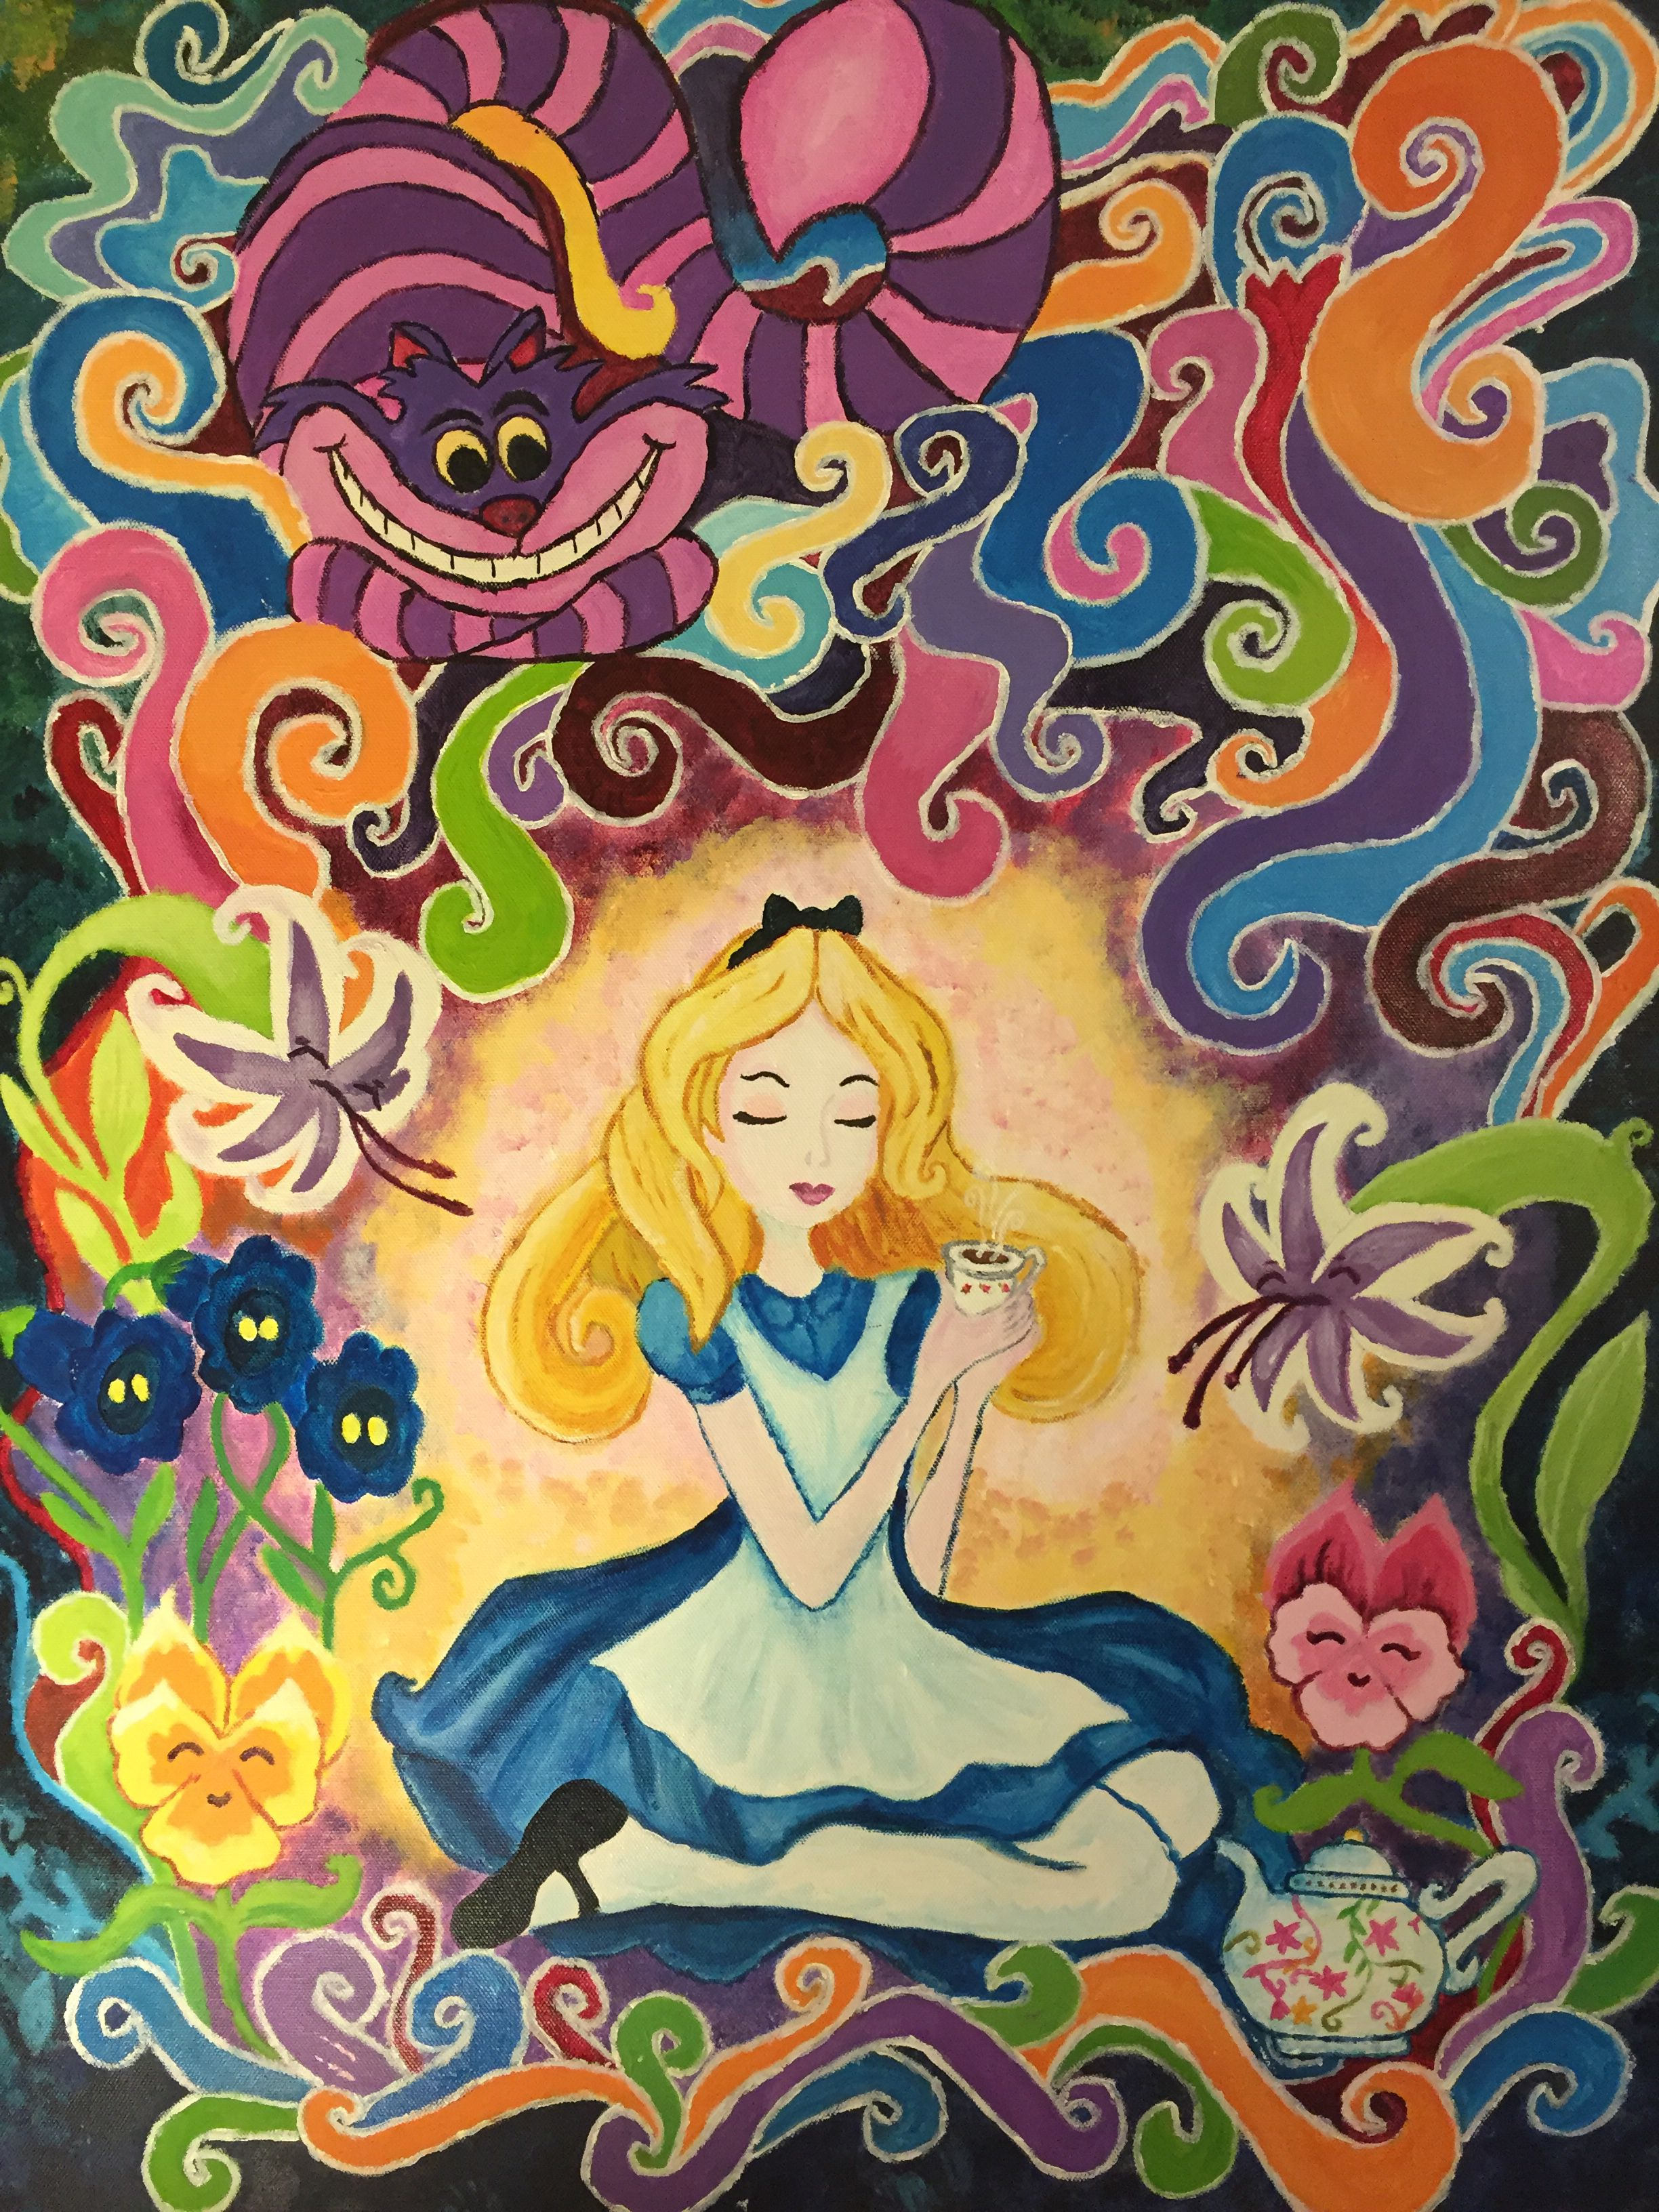 Alice In Wonderland Acrylic Painting I Did On A 22